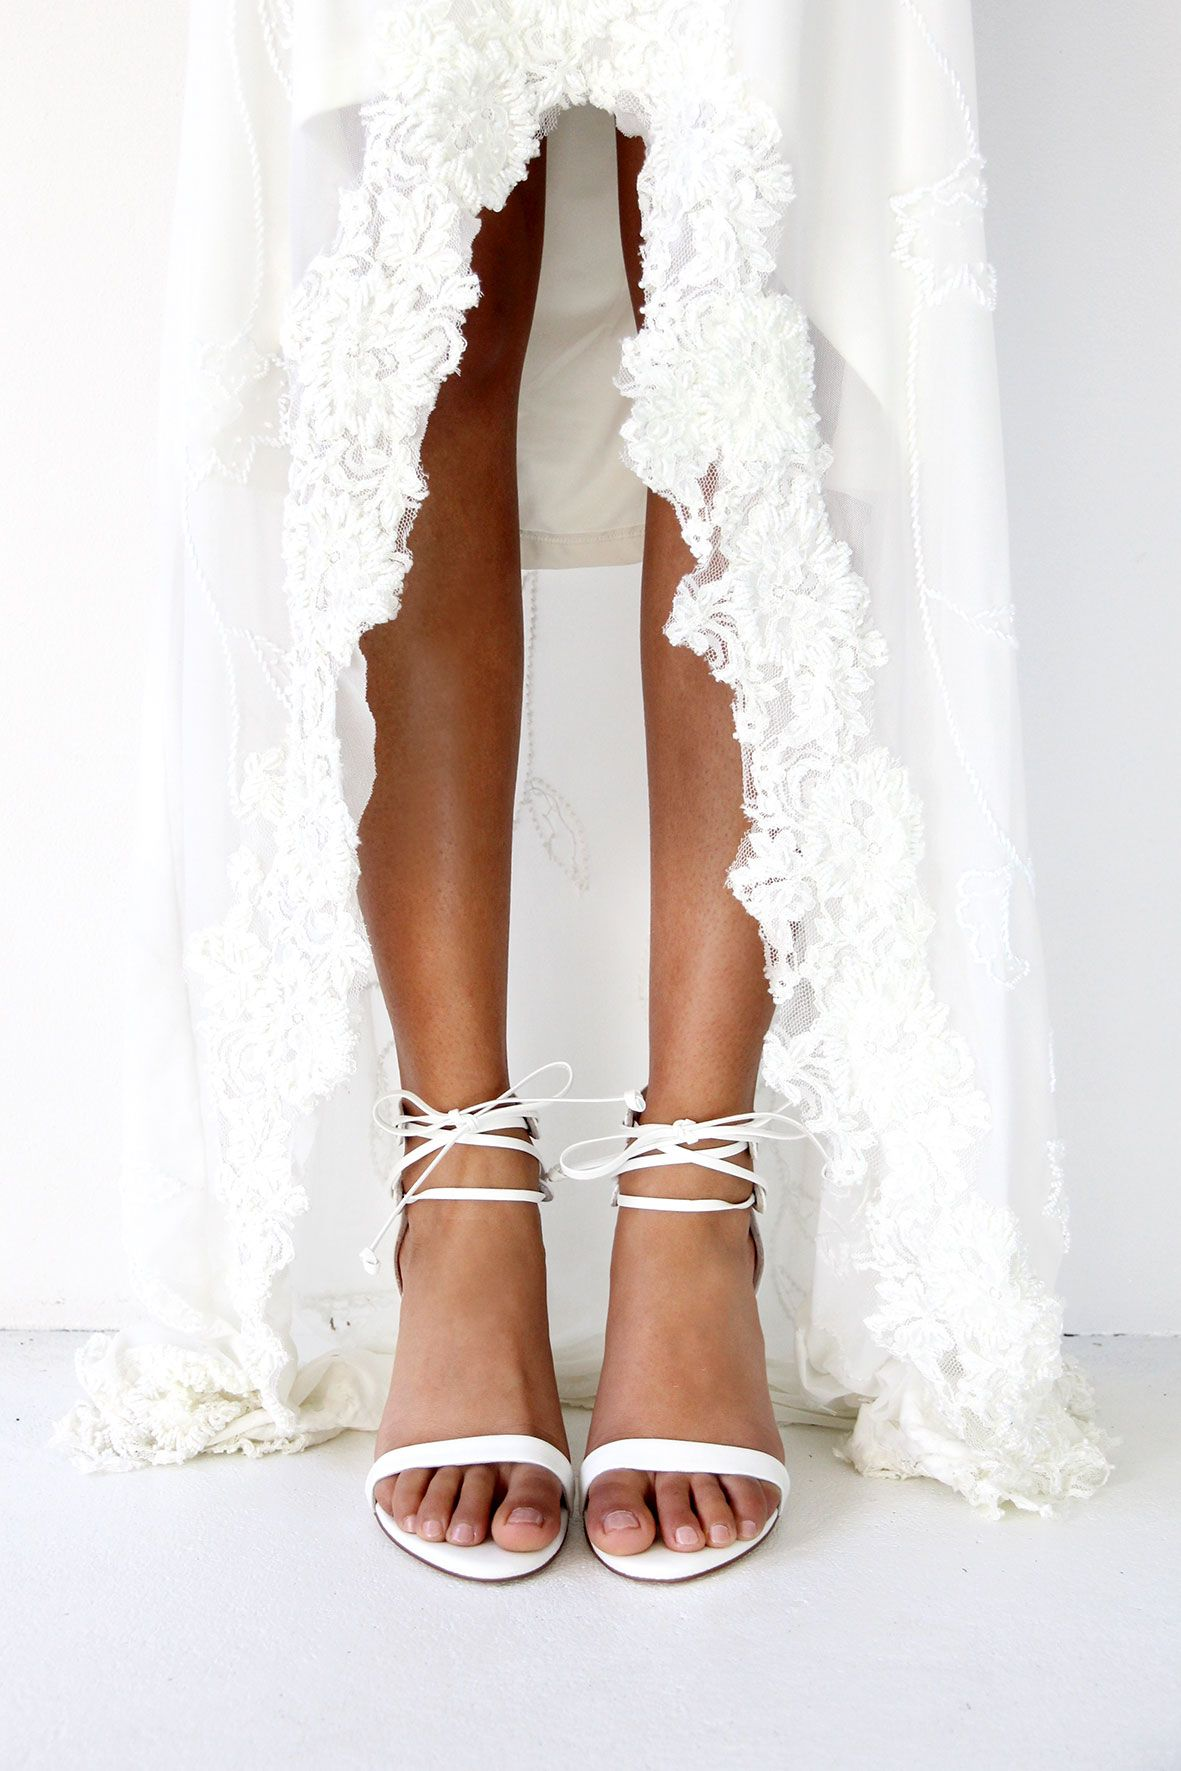 The Forever Soles Valentine Bridal Shoes Are The Perfect